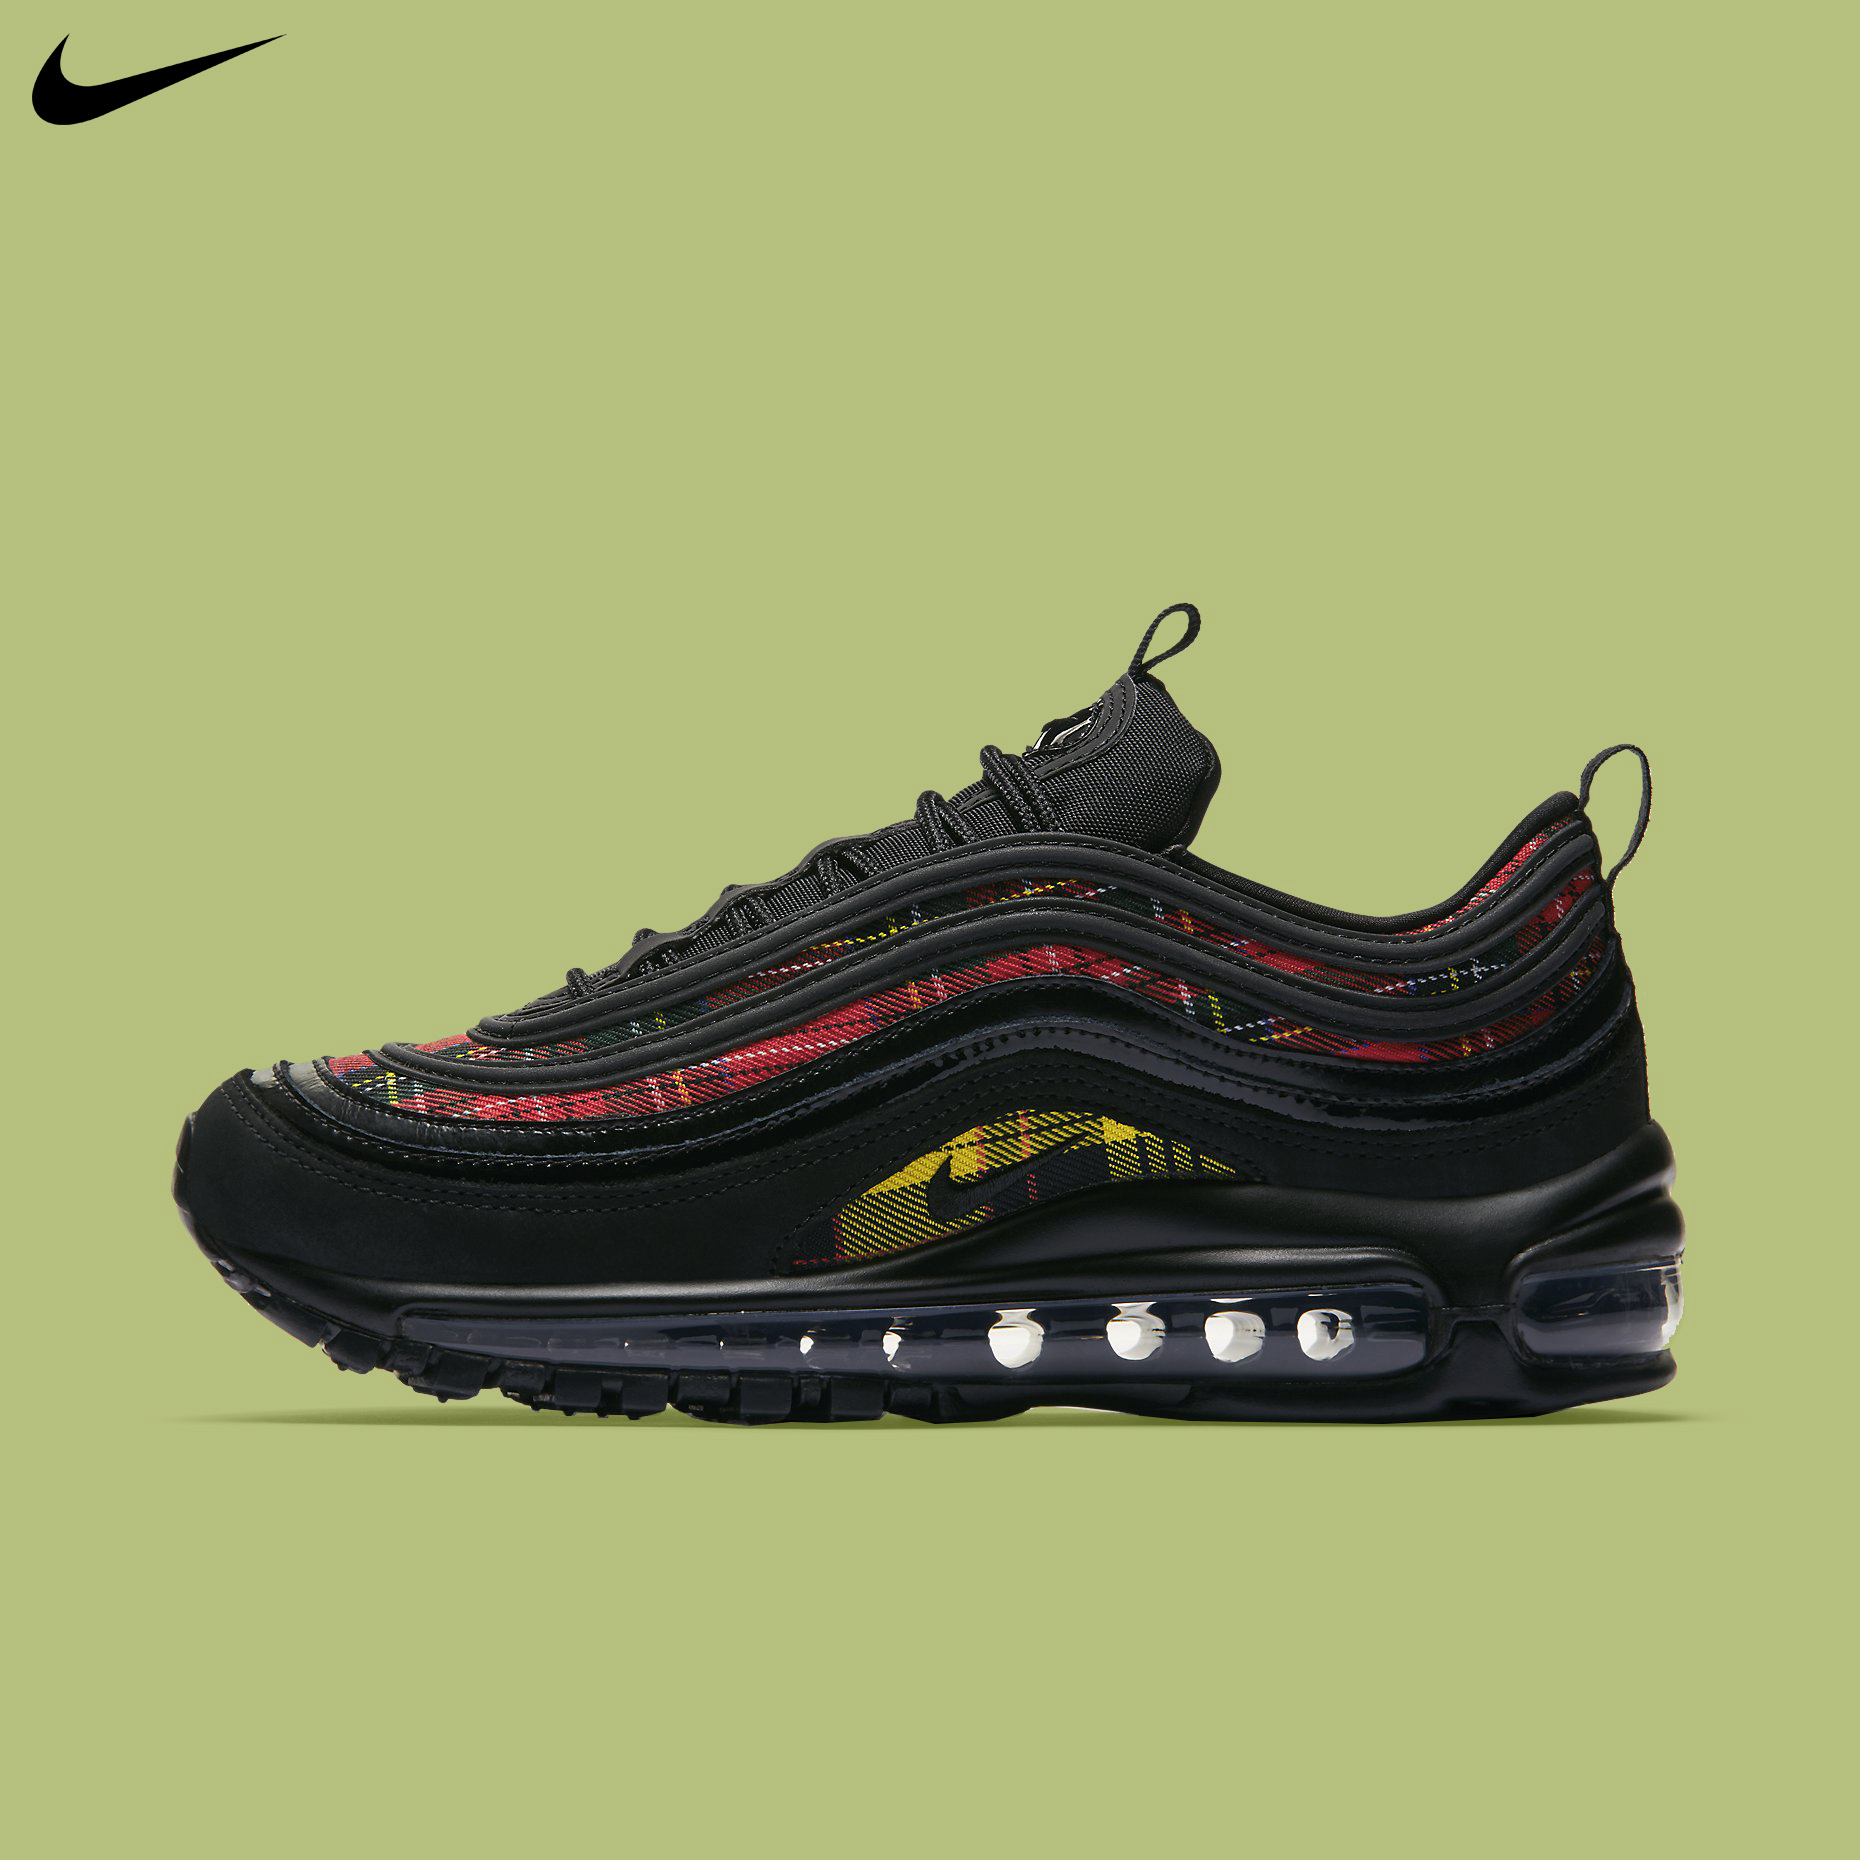 Details about Nike Women's Air Max 97 SE Tartan Black University Red Running Shoes AV8220 001